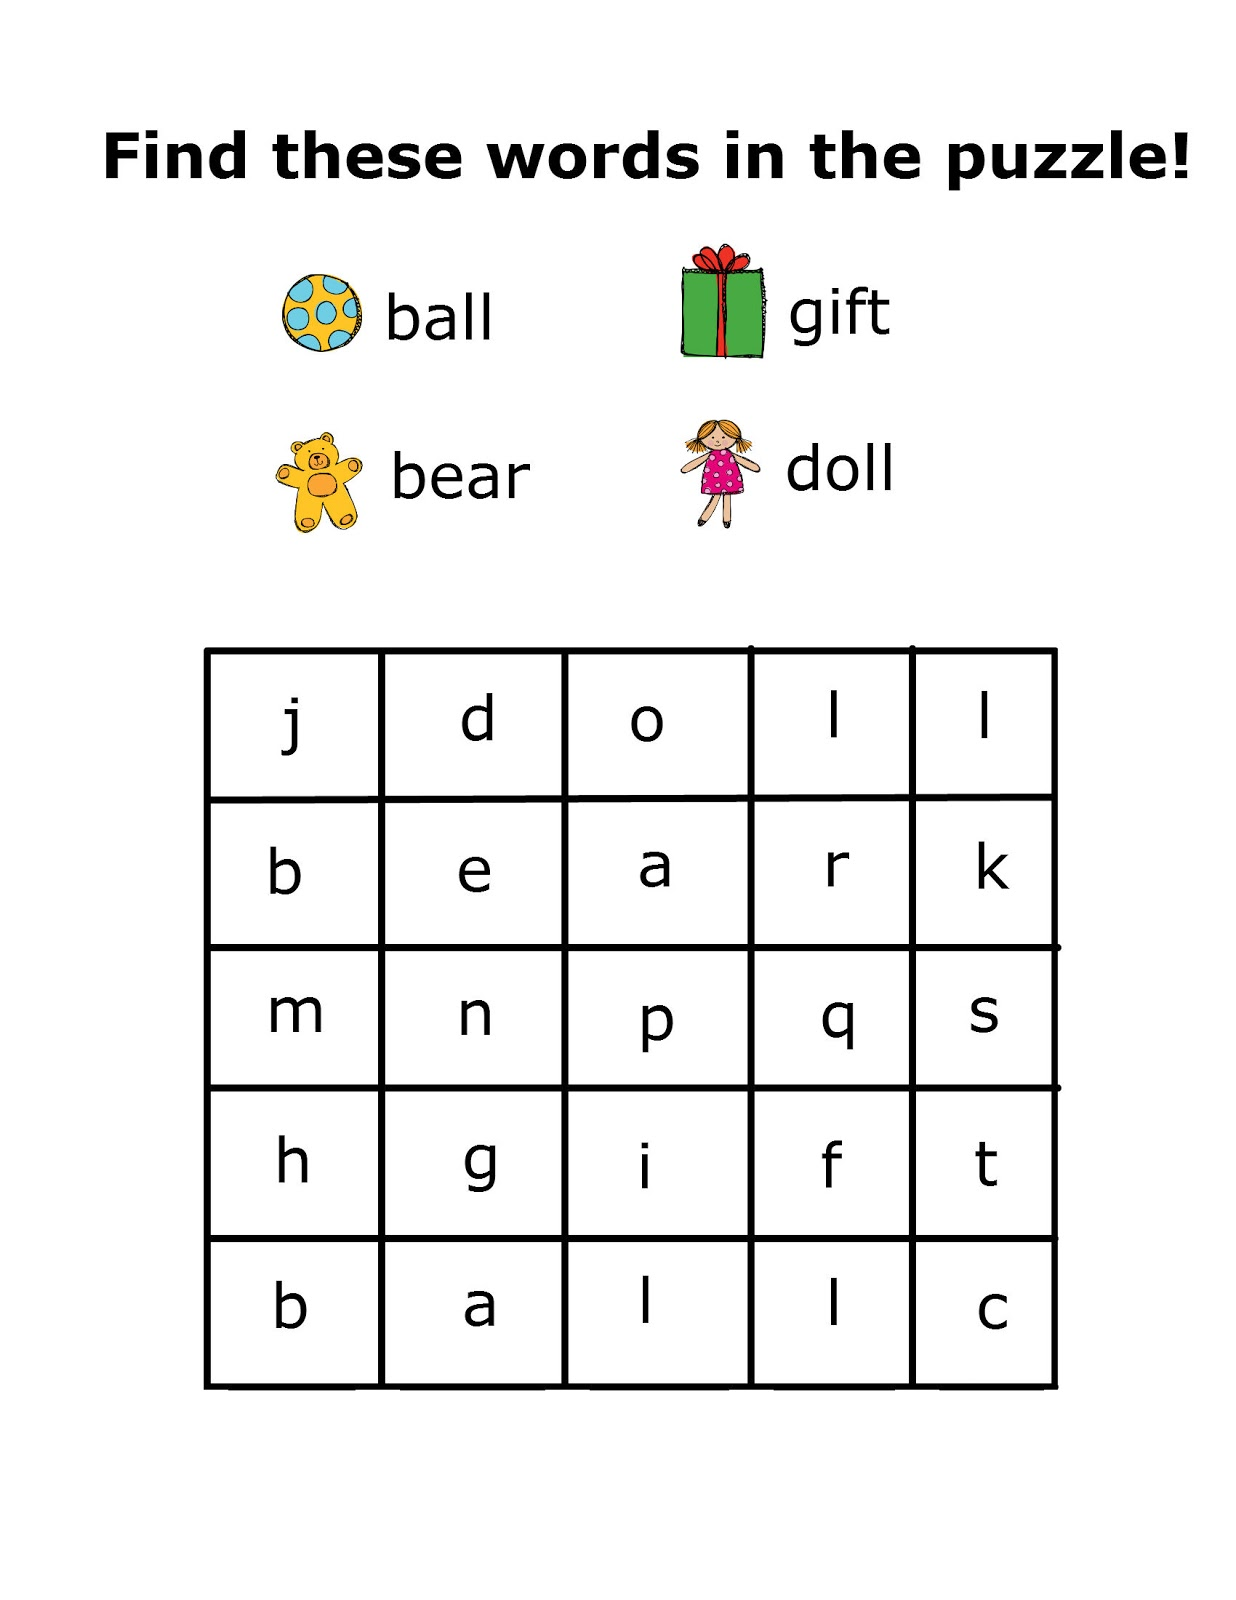 graphic regarding Kindergarten Word Search Printable named Free of charge Printable Kindergarten Term Look Puzzles cost-free impression